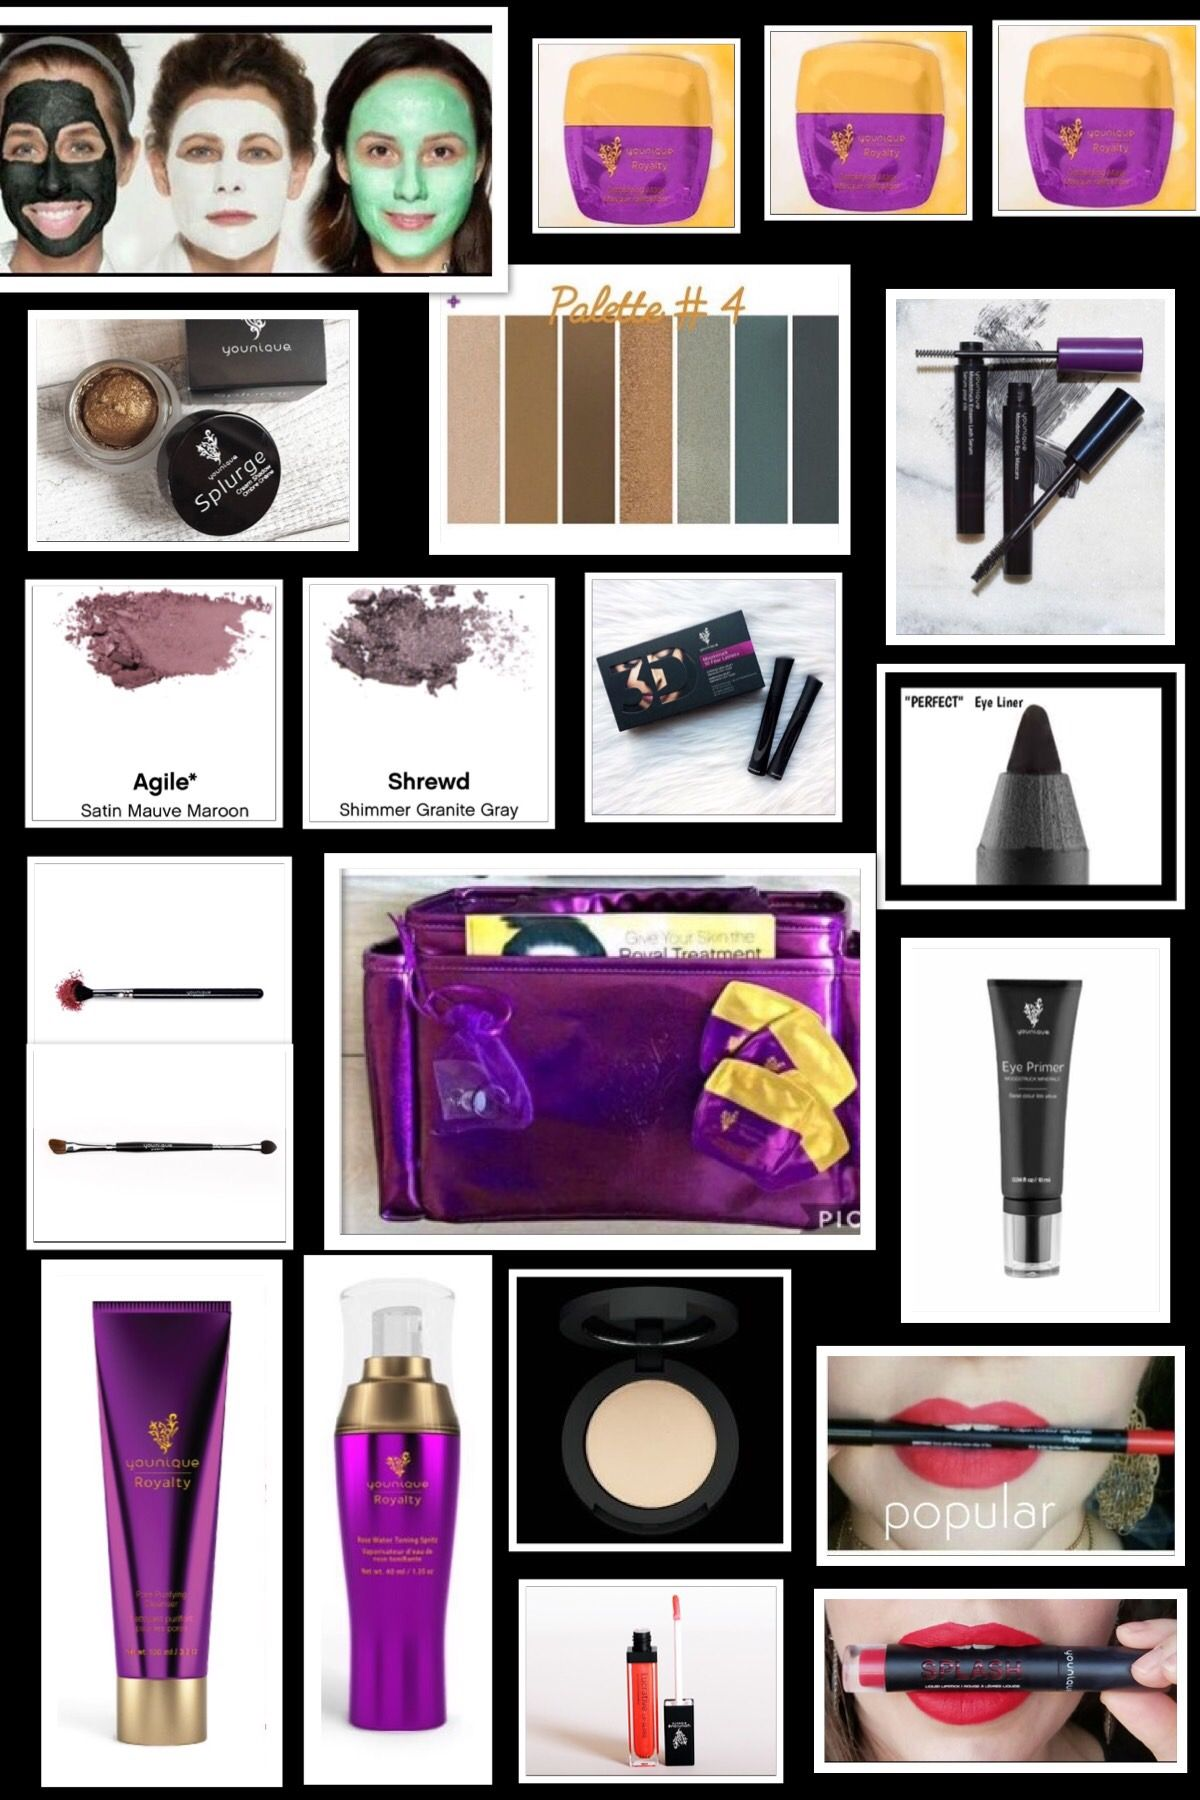 Presenter Kit 99 + Free Shipping 439 Value!!! Be a